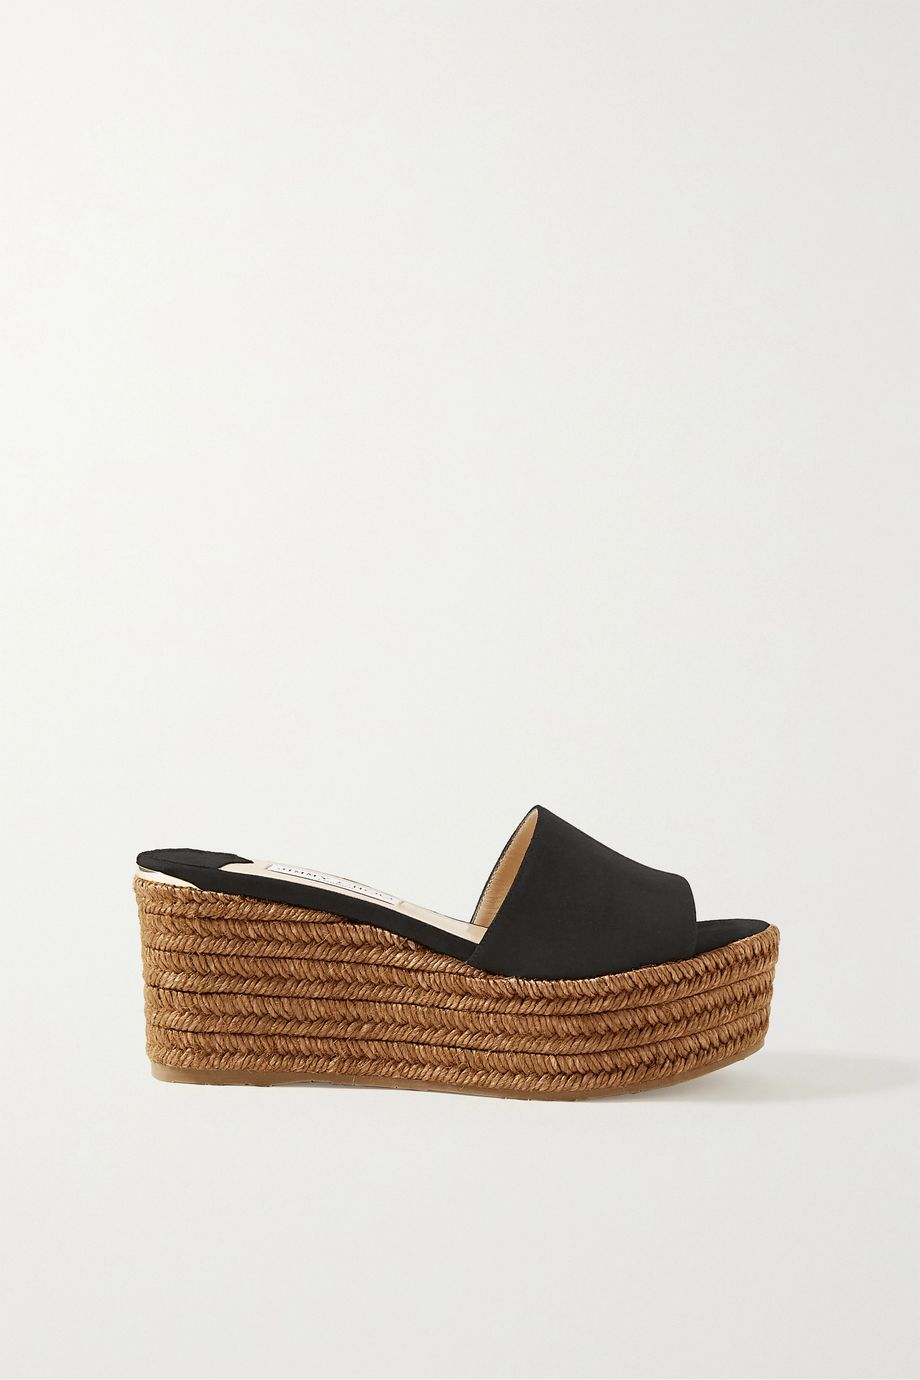 Jimmy Choo Deedee 80 suede espadrille wedge mules